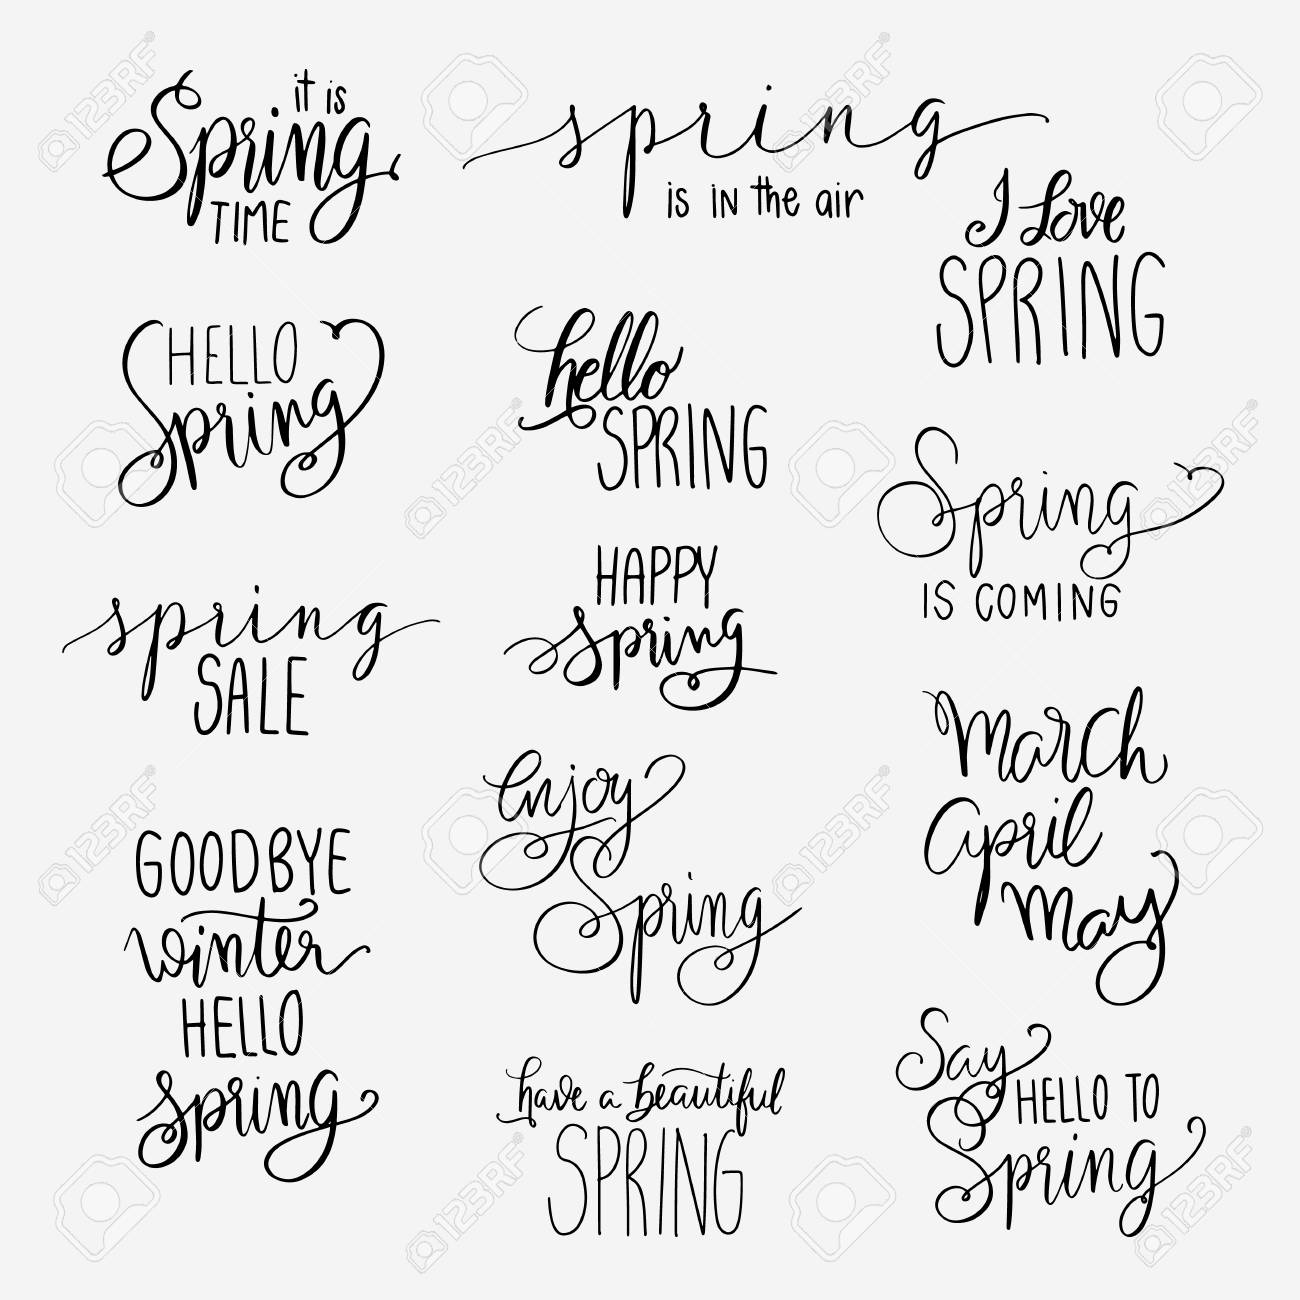 Spring Lettering Calligraphy Postcard Or Poster Graphic Design Royalty Free Cliparts Vectors And Stock Illustration Image 96680922